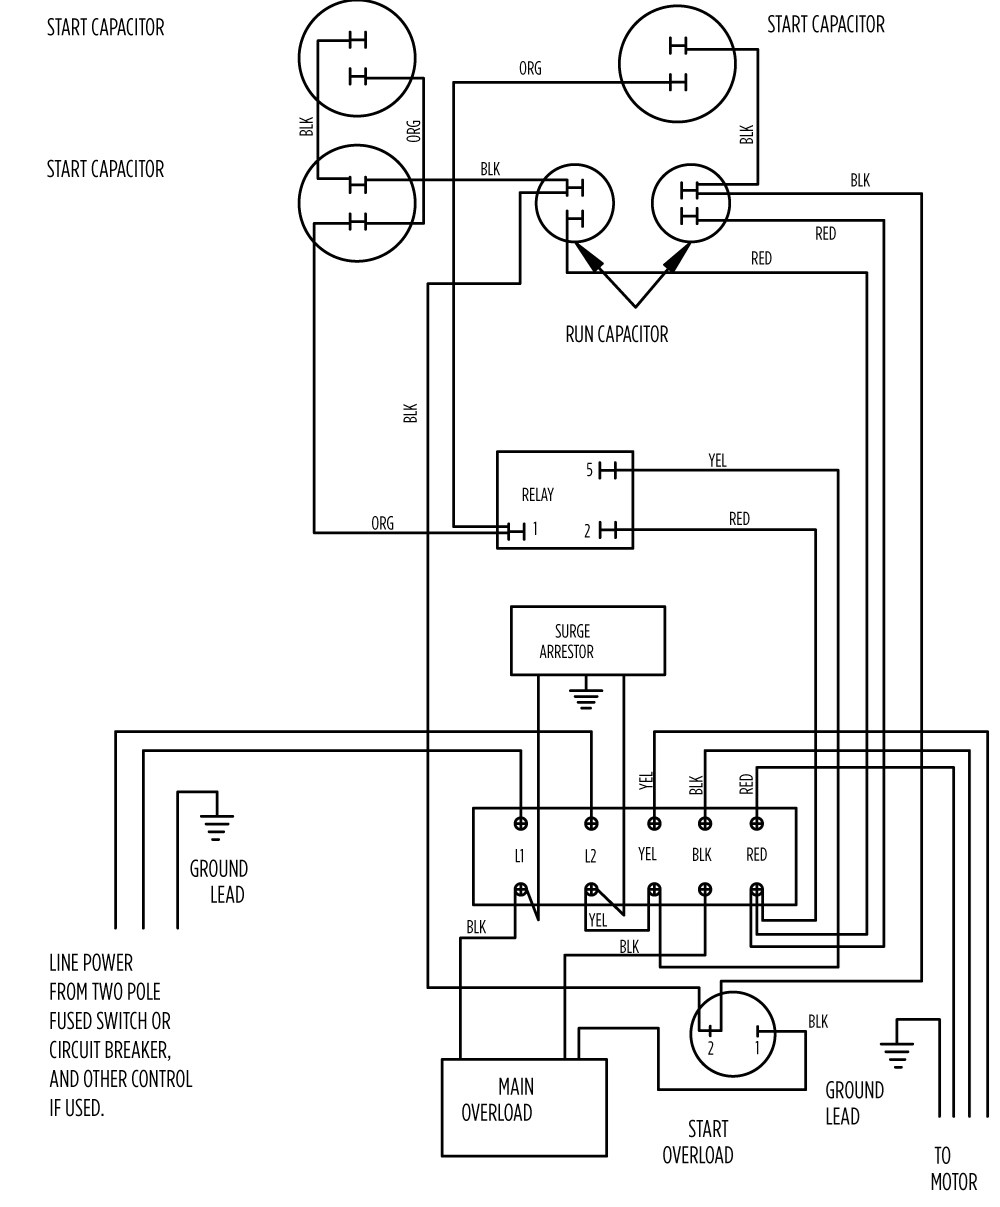 10 hp standard 282 202 9210 or 282 202 9230_aim gallery?format=jpg&quality=80 aim manual page 57 single phase motors and controls motor Control Panel Electrical Wiring Basics at soozxer.org